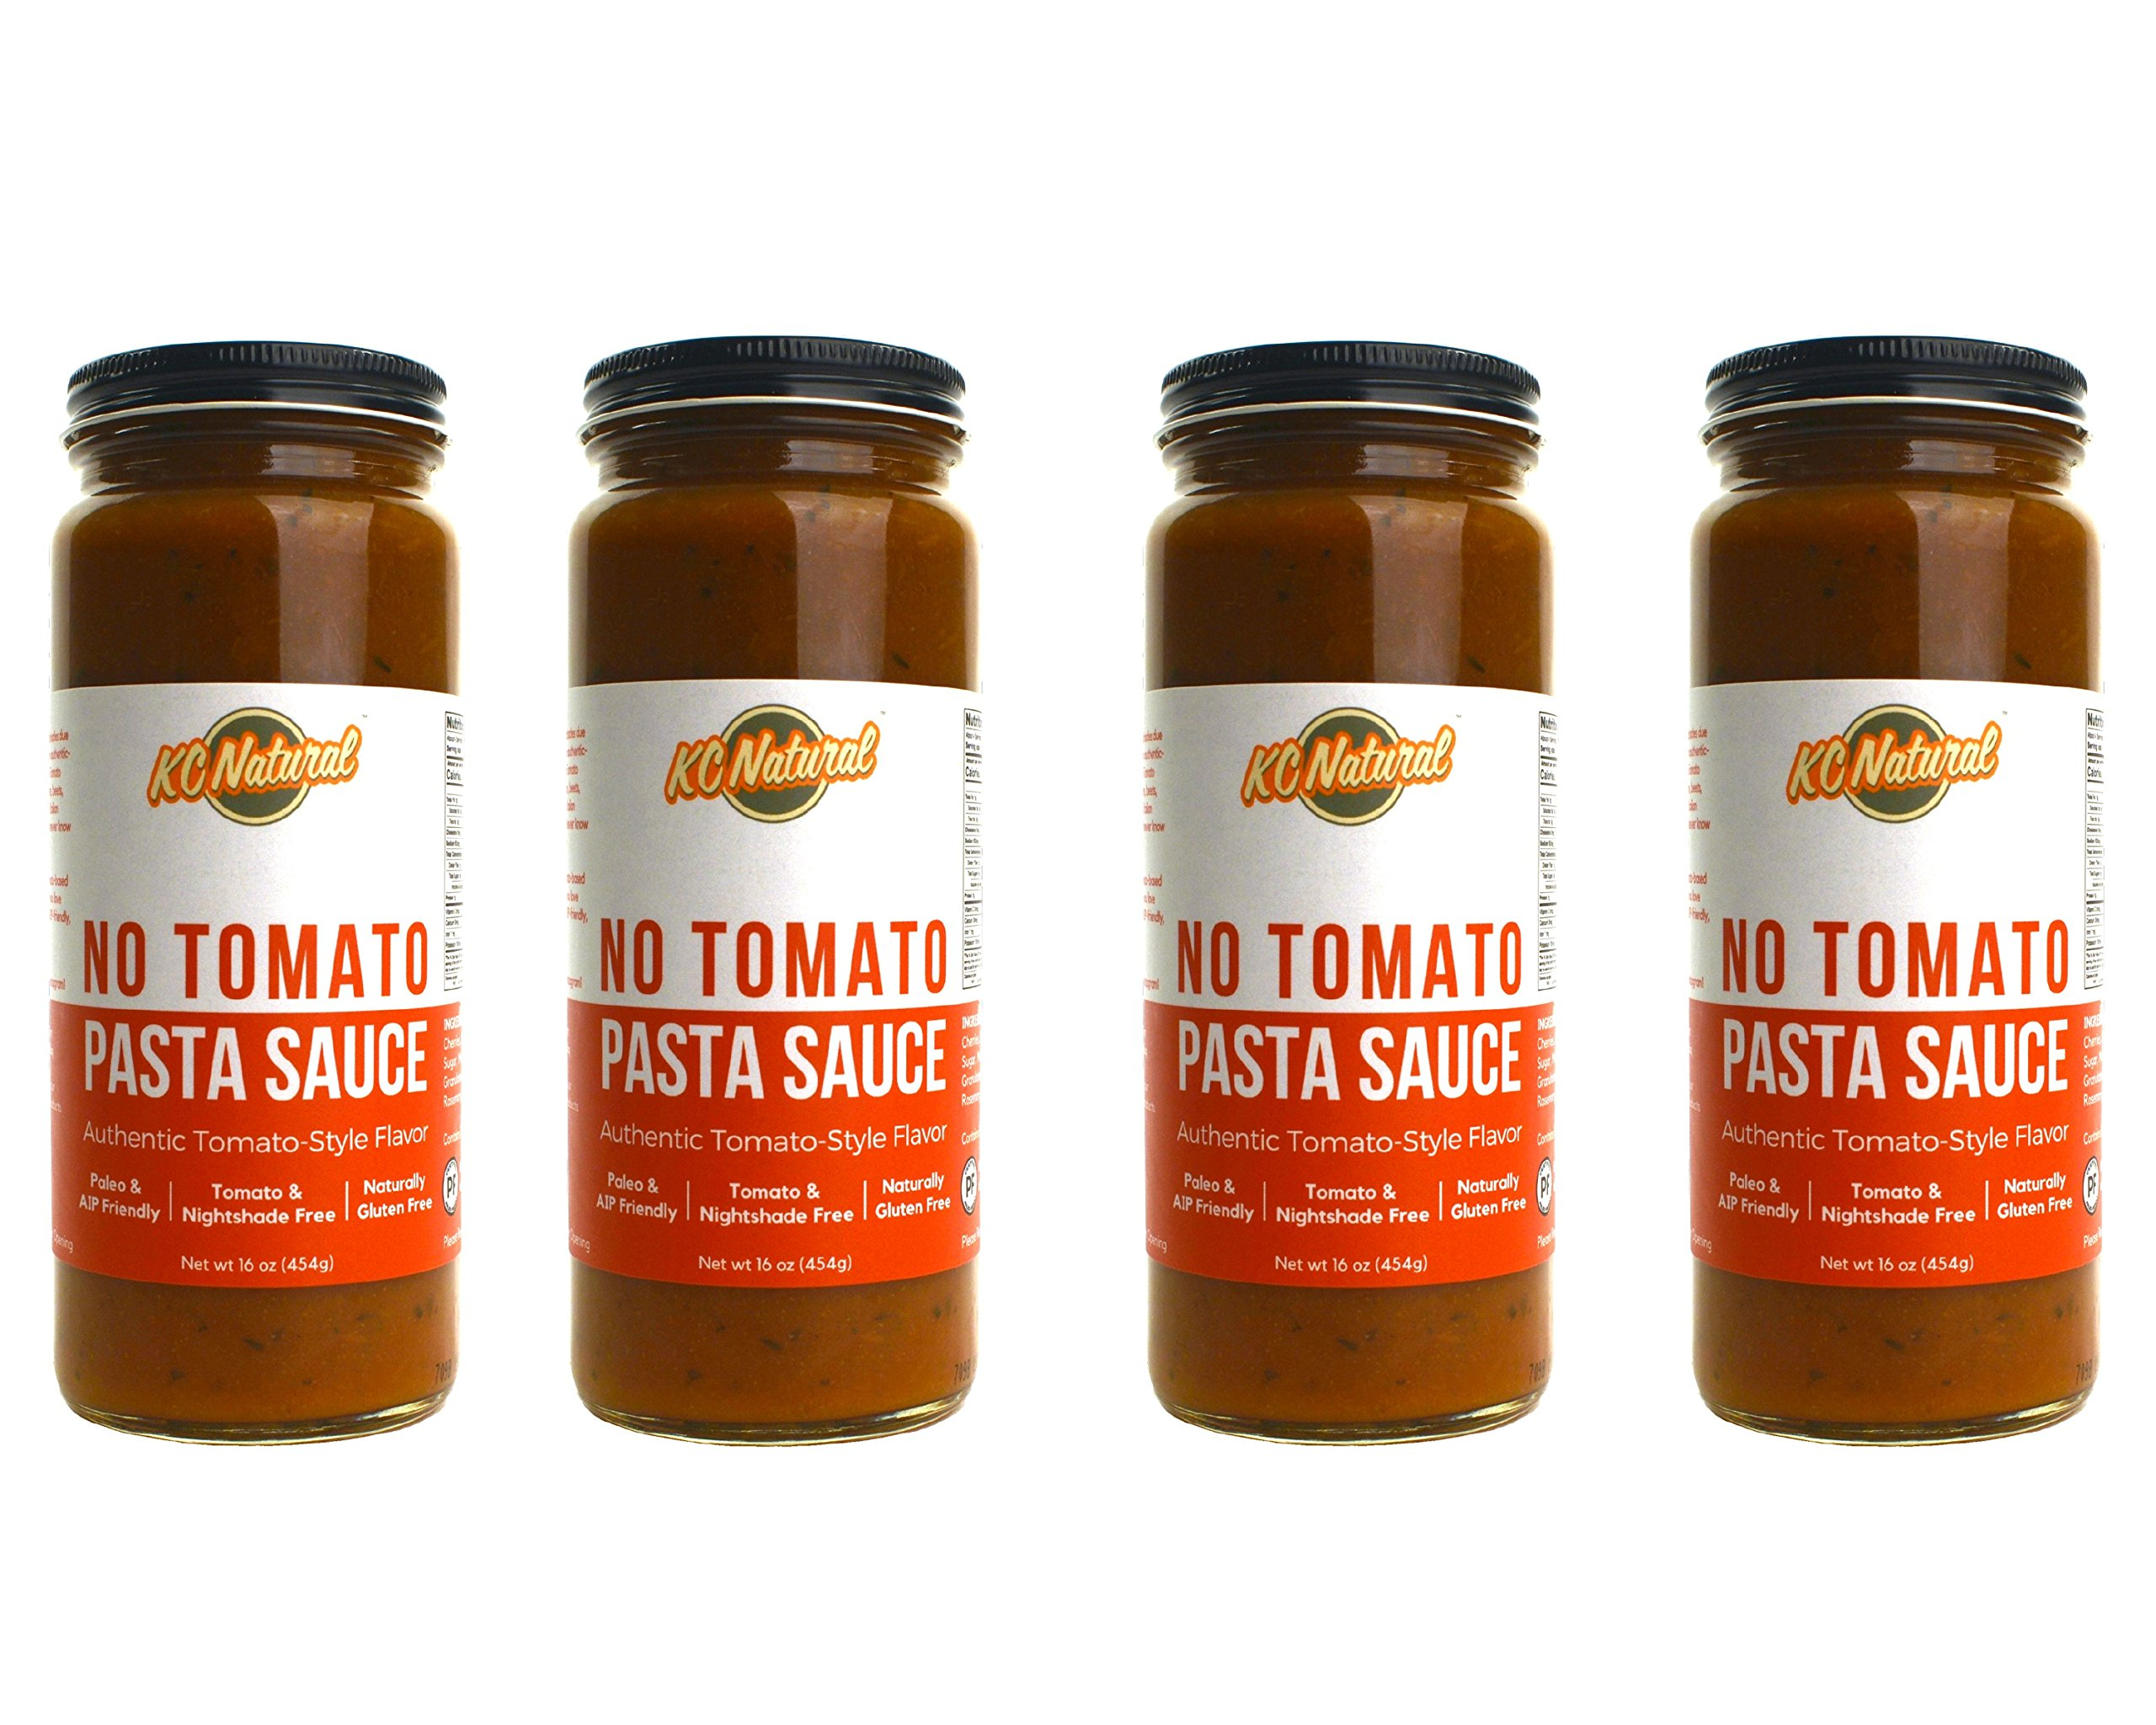 KC Natural No Tomato Pasta Sauce (16oz) - 4-pack